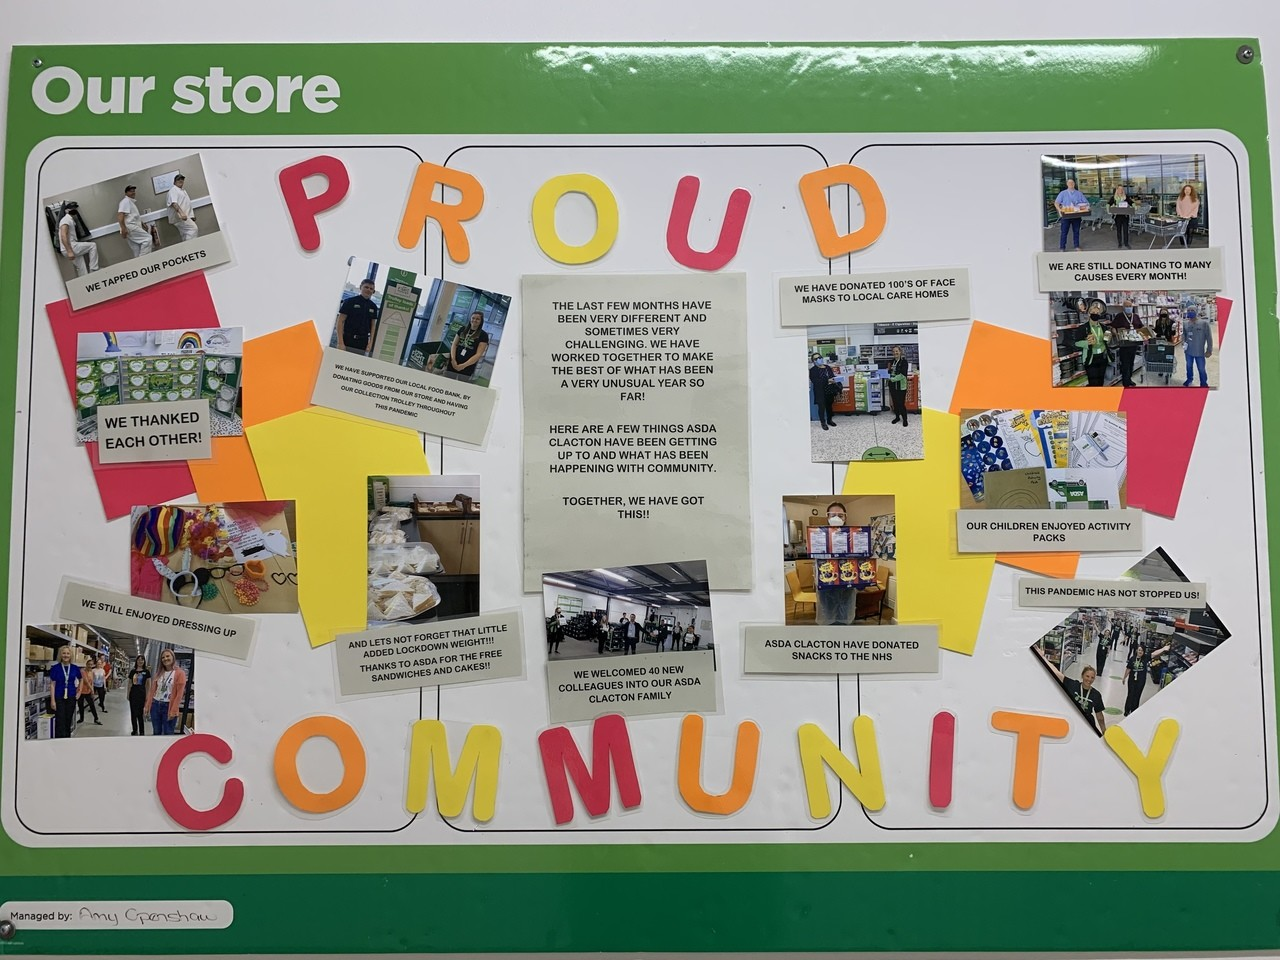 Community board  | Asda Clacton-on-Sea